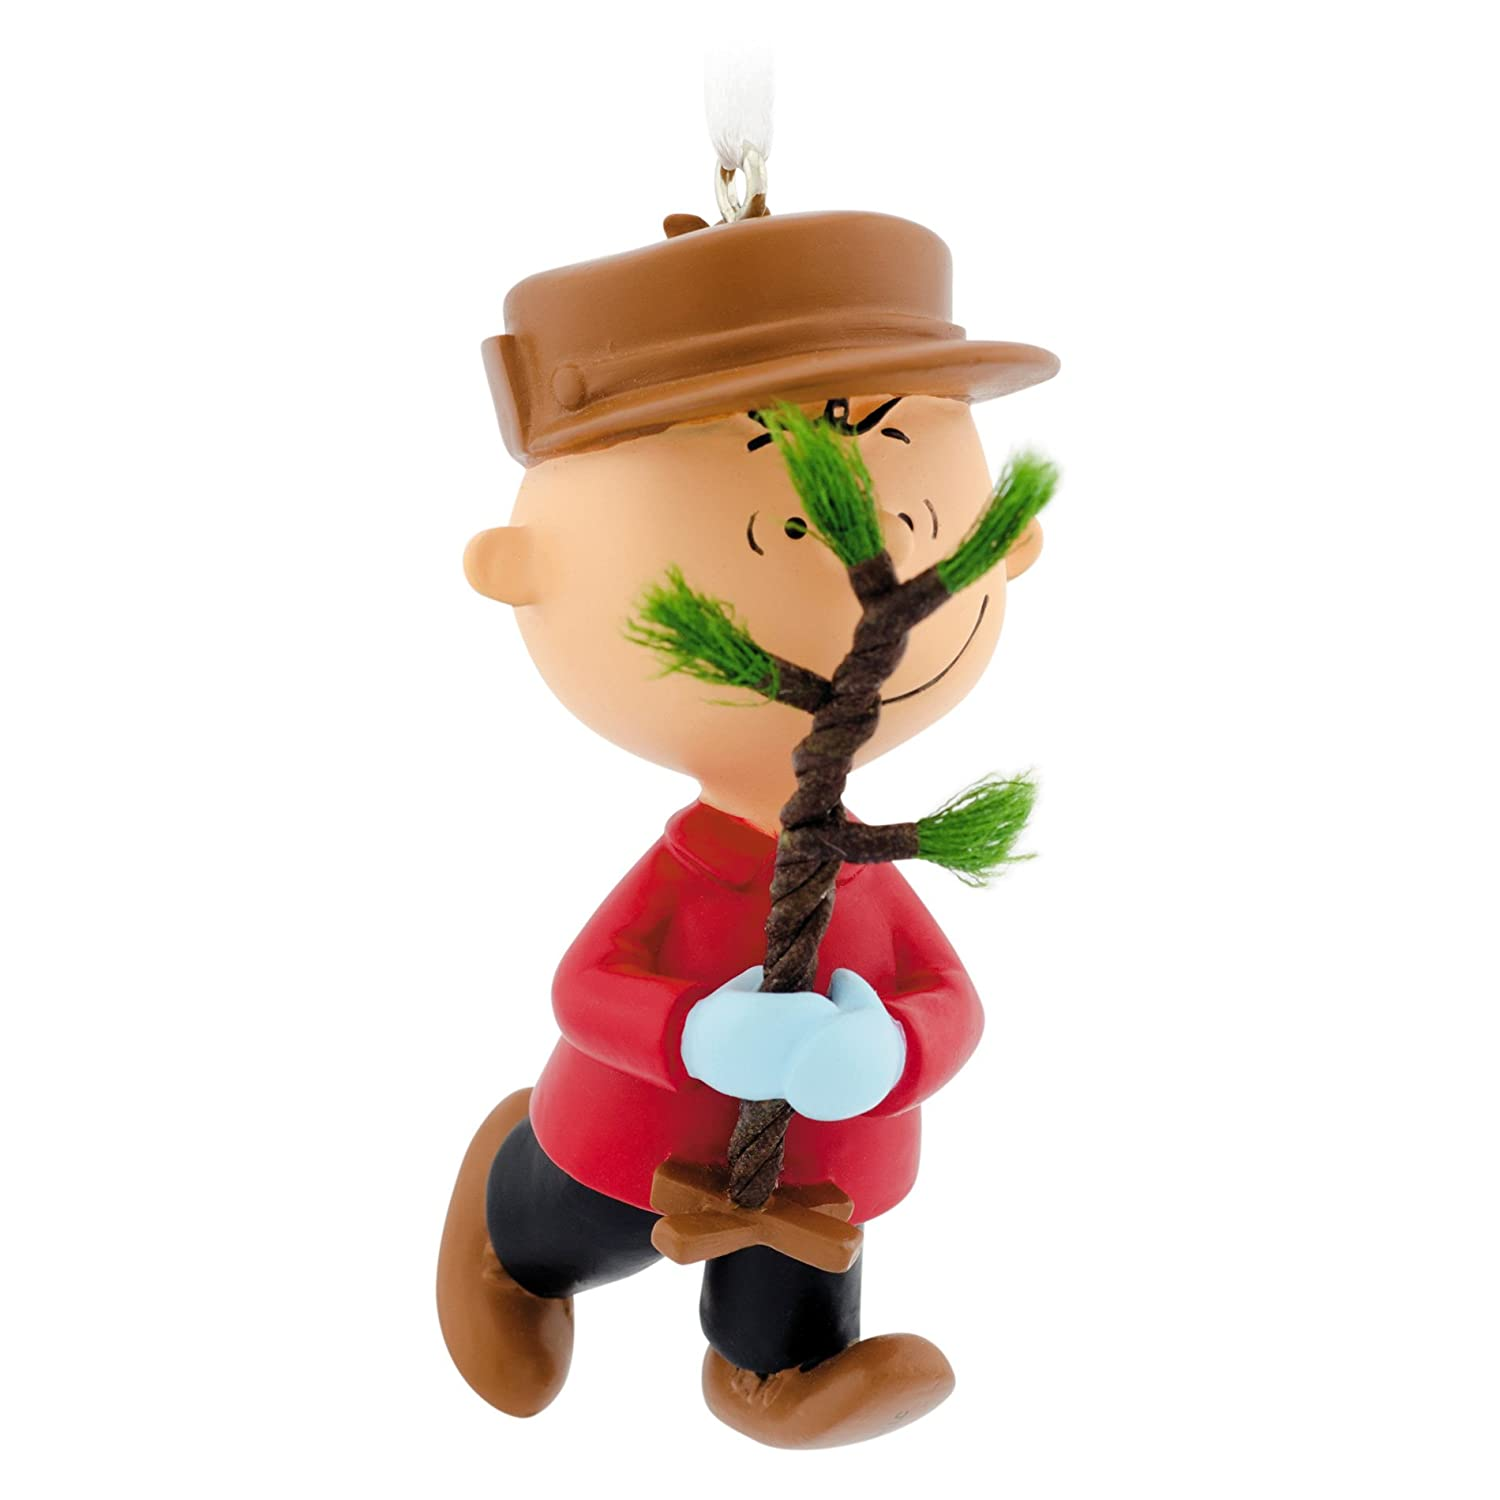 Amazon.com: Hallmark Peanuts Charlie Brown with Tree Christmas ...